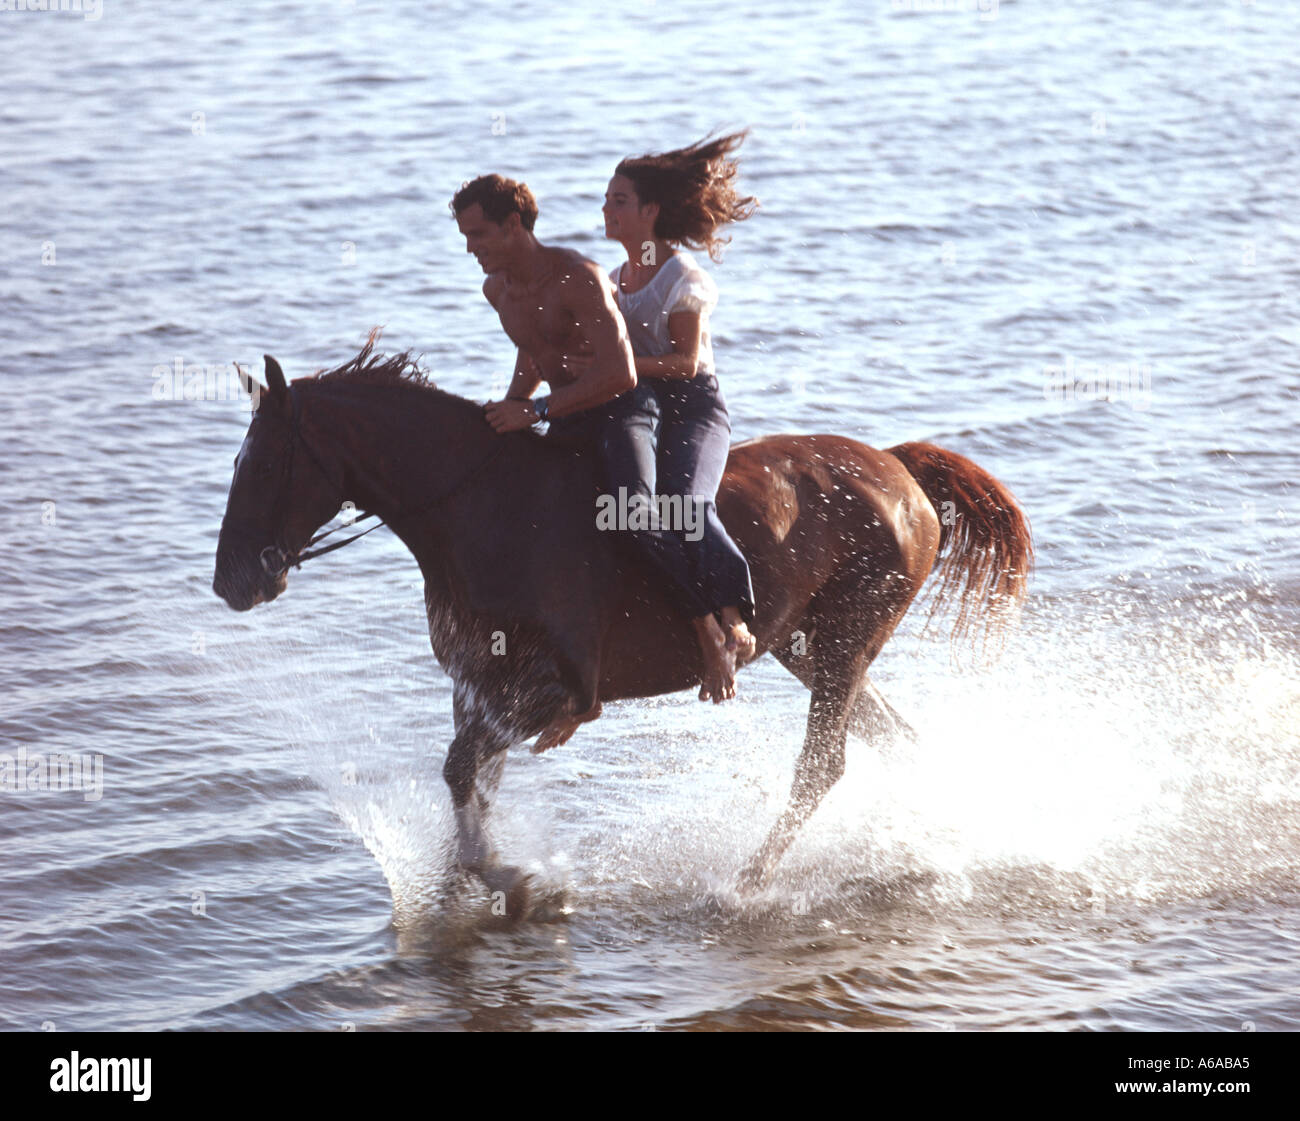 Couple Riding Horse In Shallow Lake Stock Photo Alamy